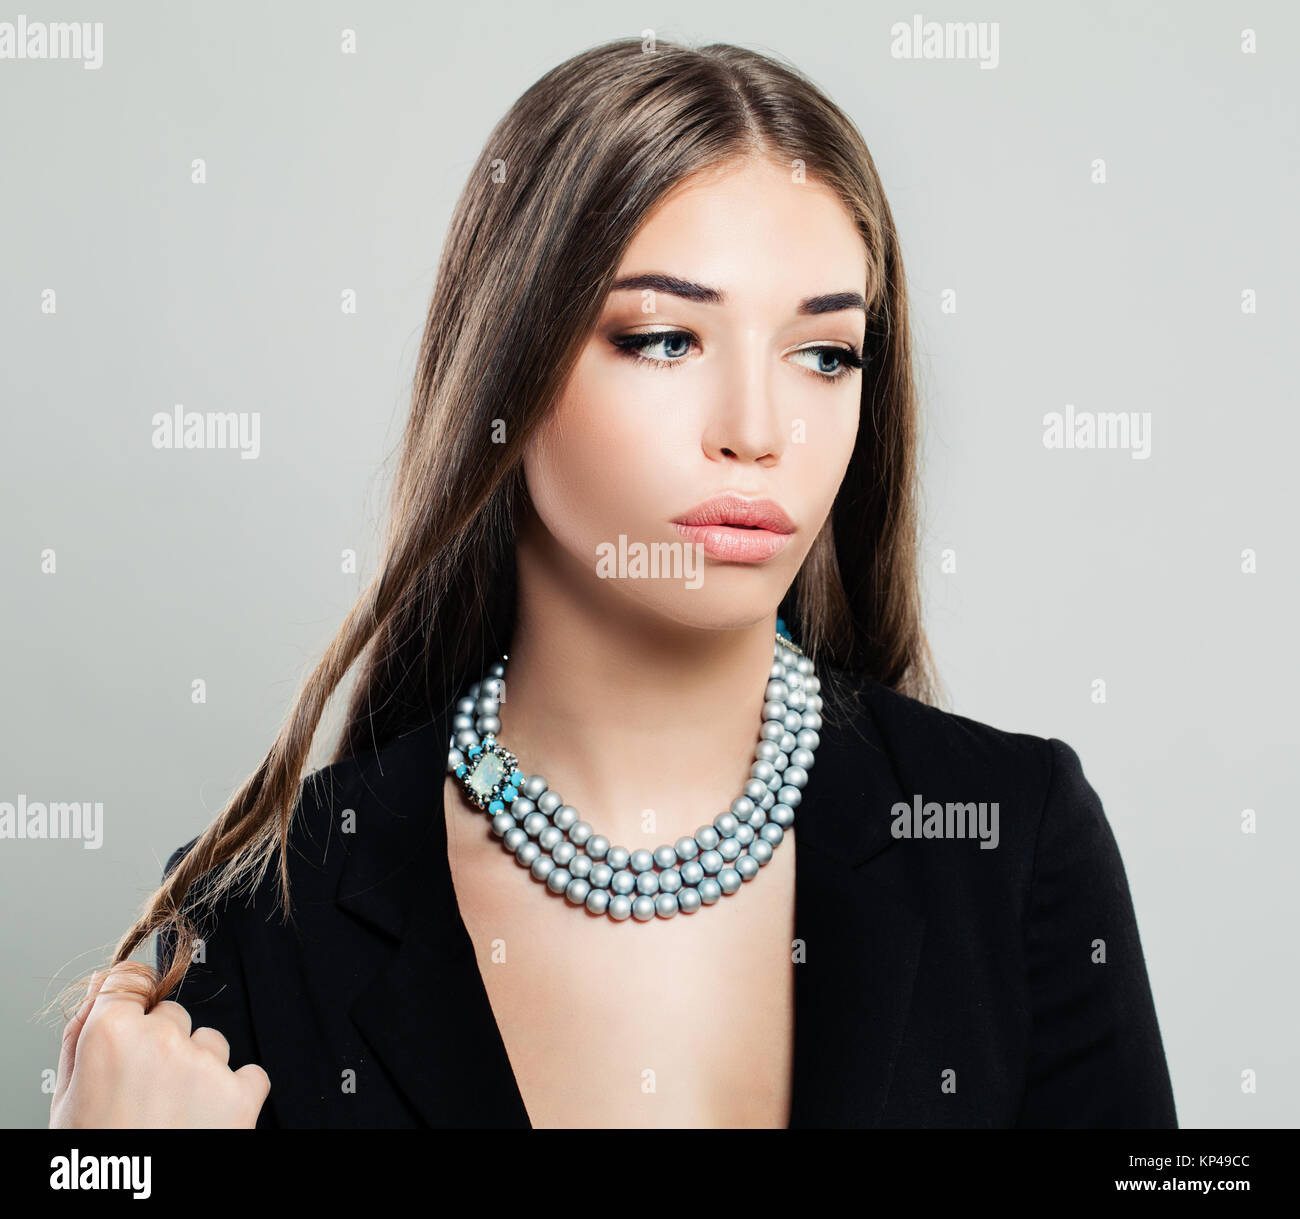 Fashion Teen Model Jewelry Stock Photos & Fashion Teen ...